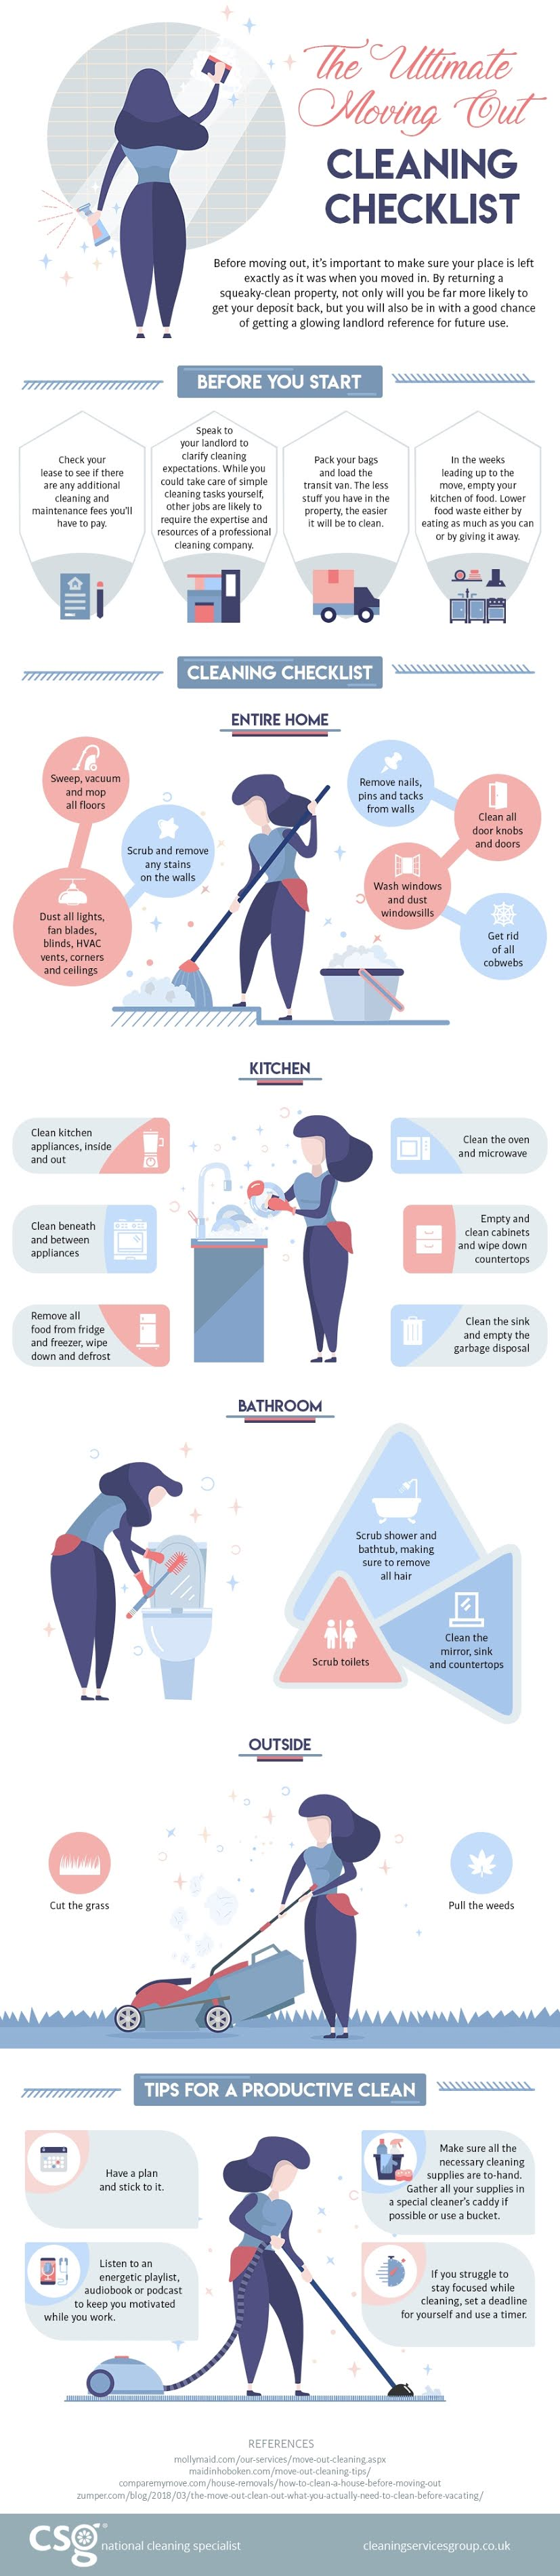 The Ultimate Moving Out Cleaning Checklist #infographic